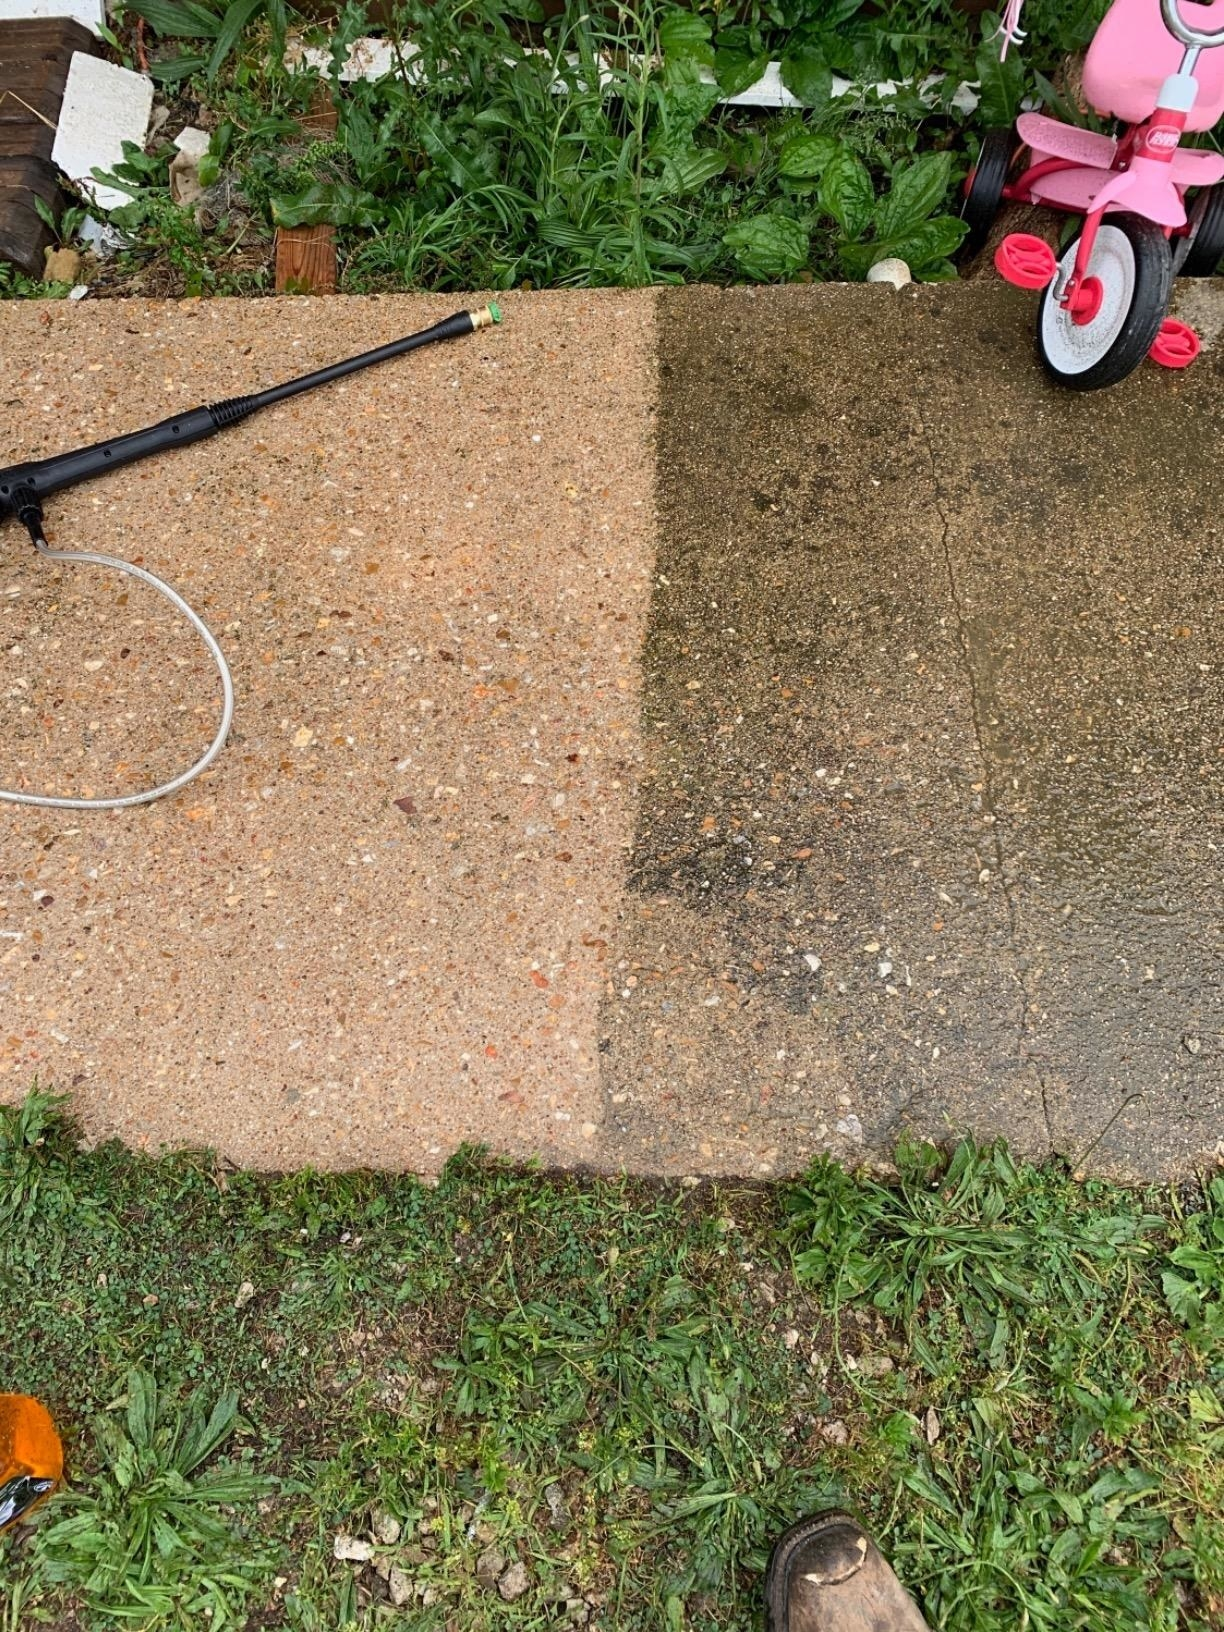 A reviewer showing a sidewalk before/after power washinig